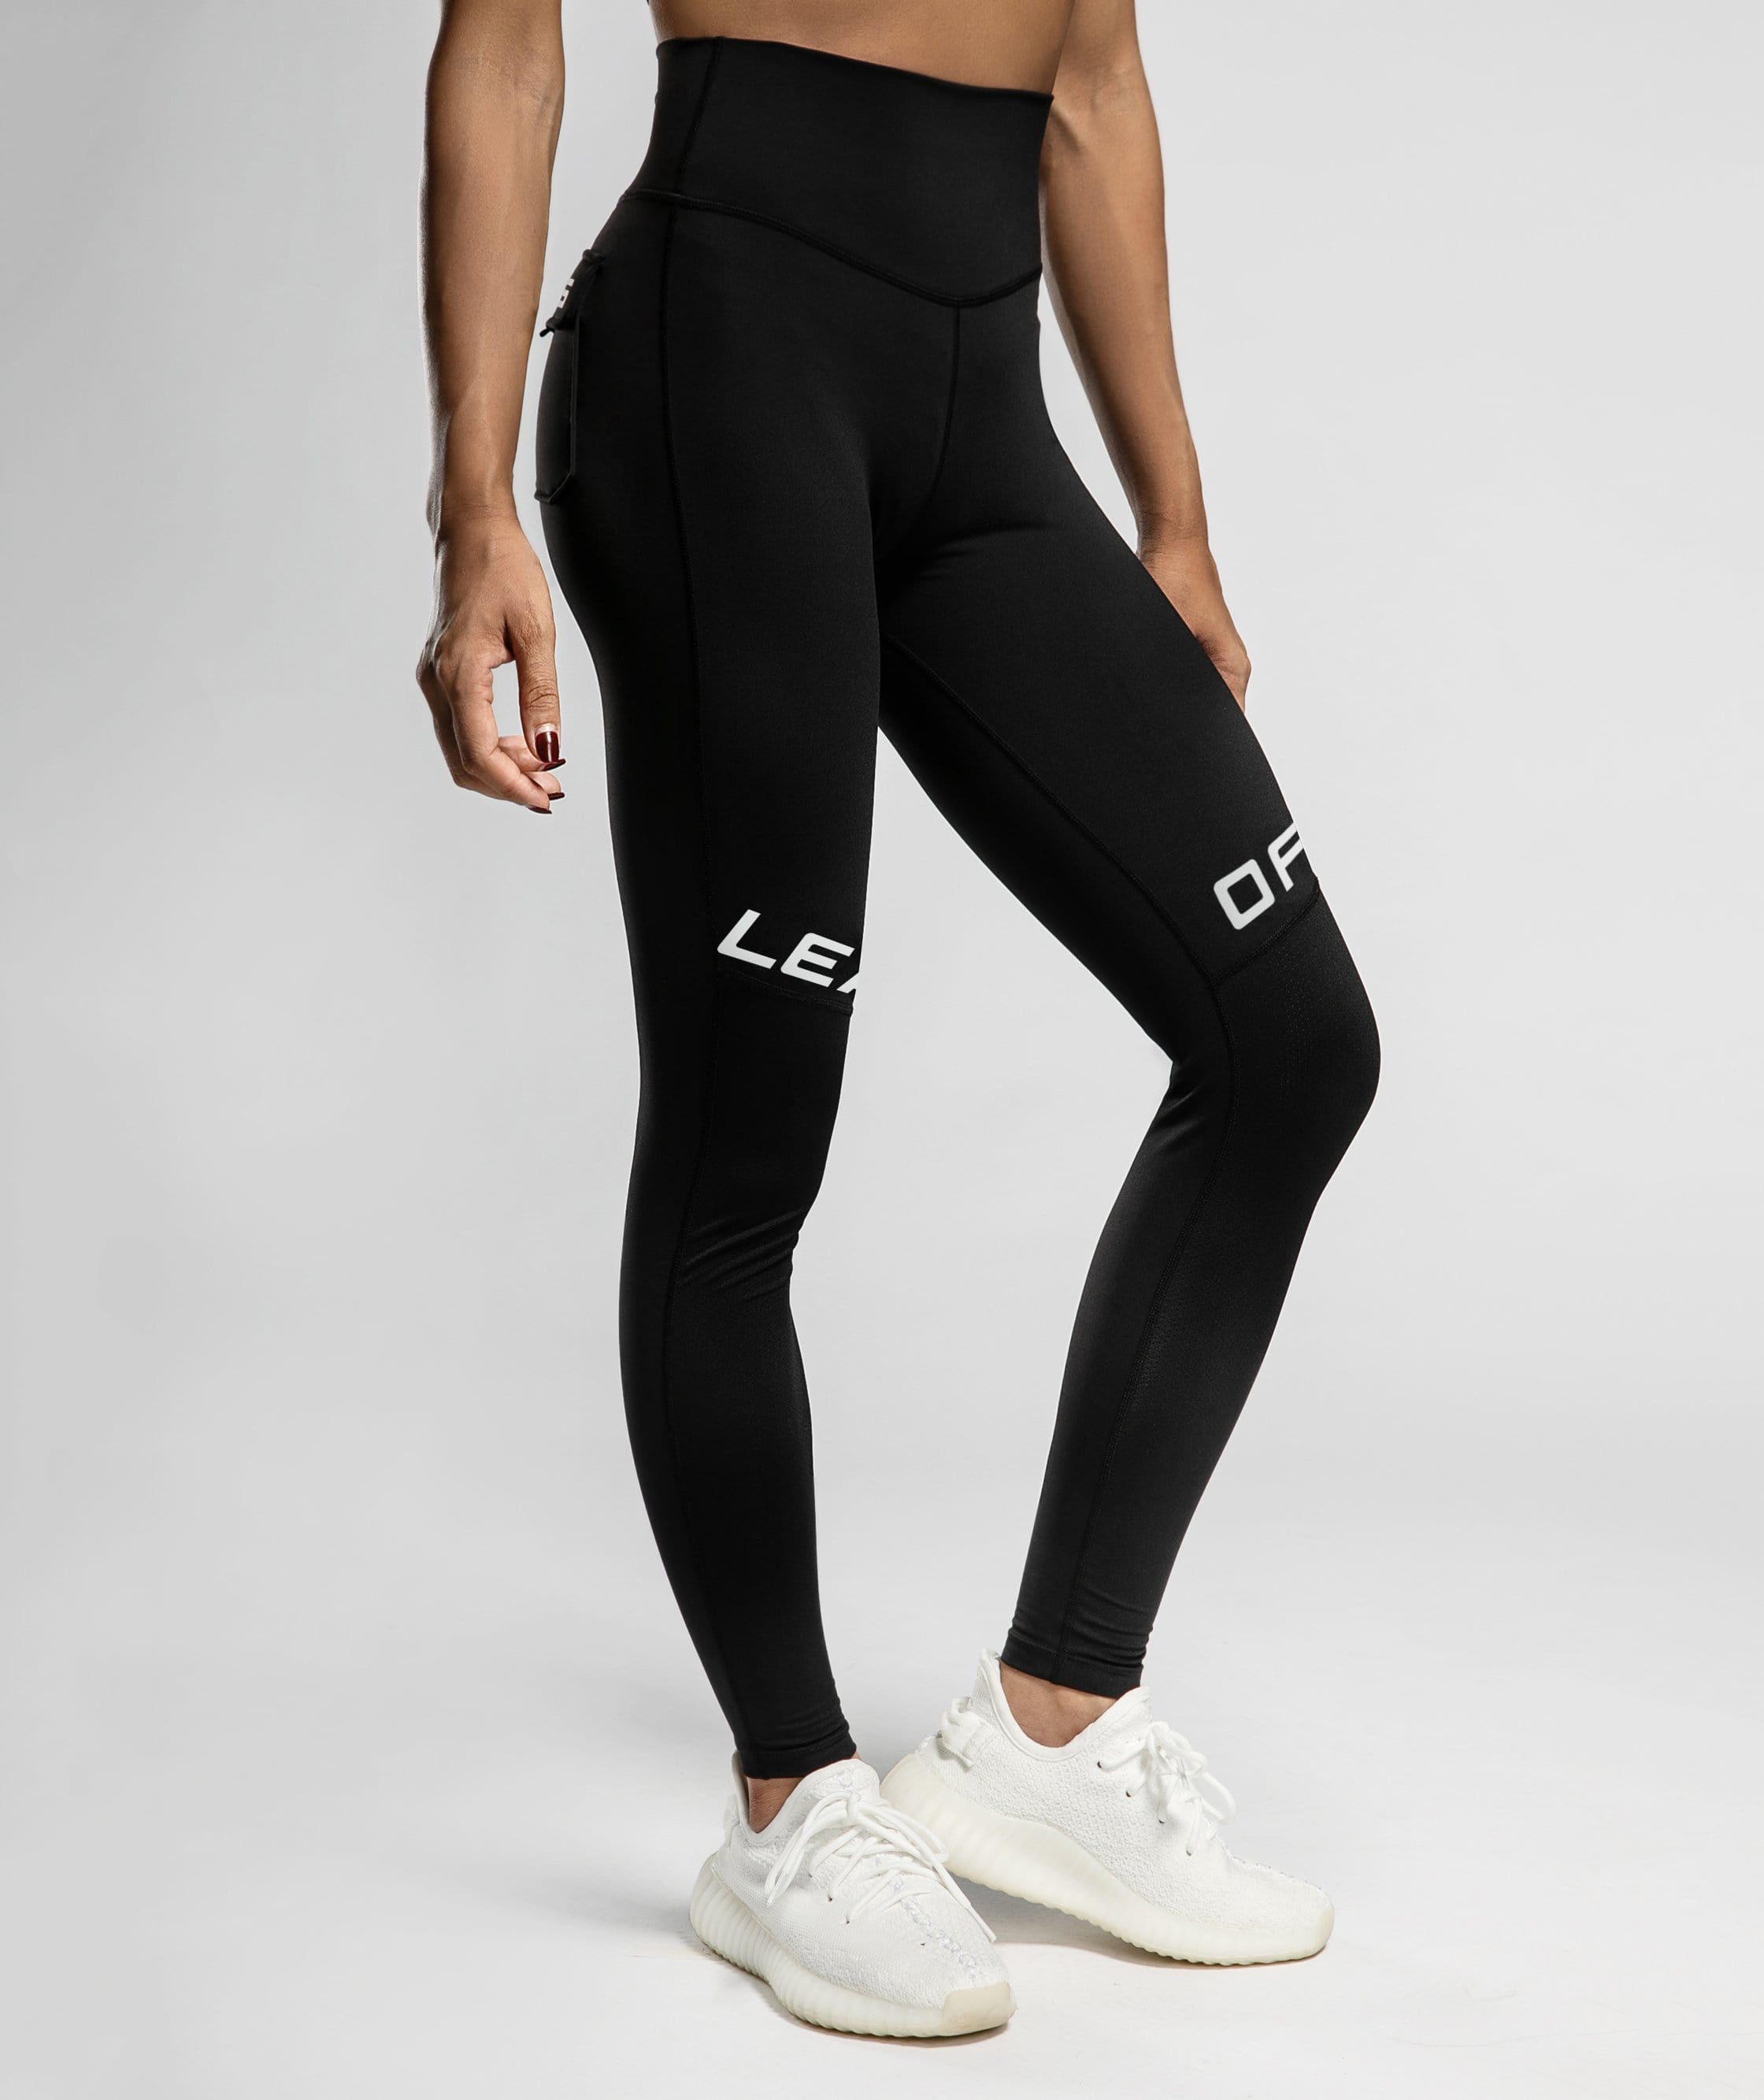 Core Leggings Plus